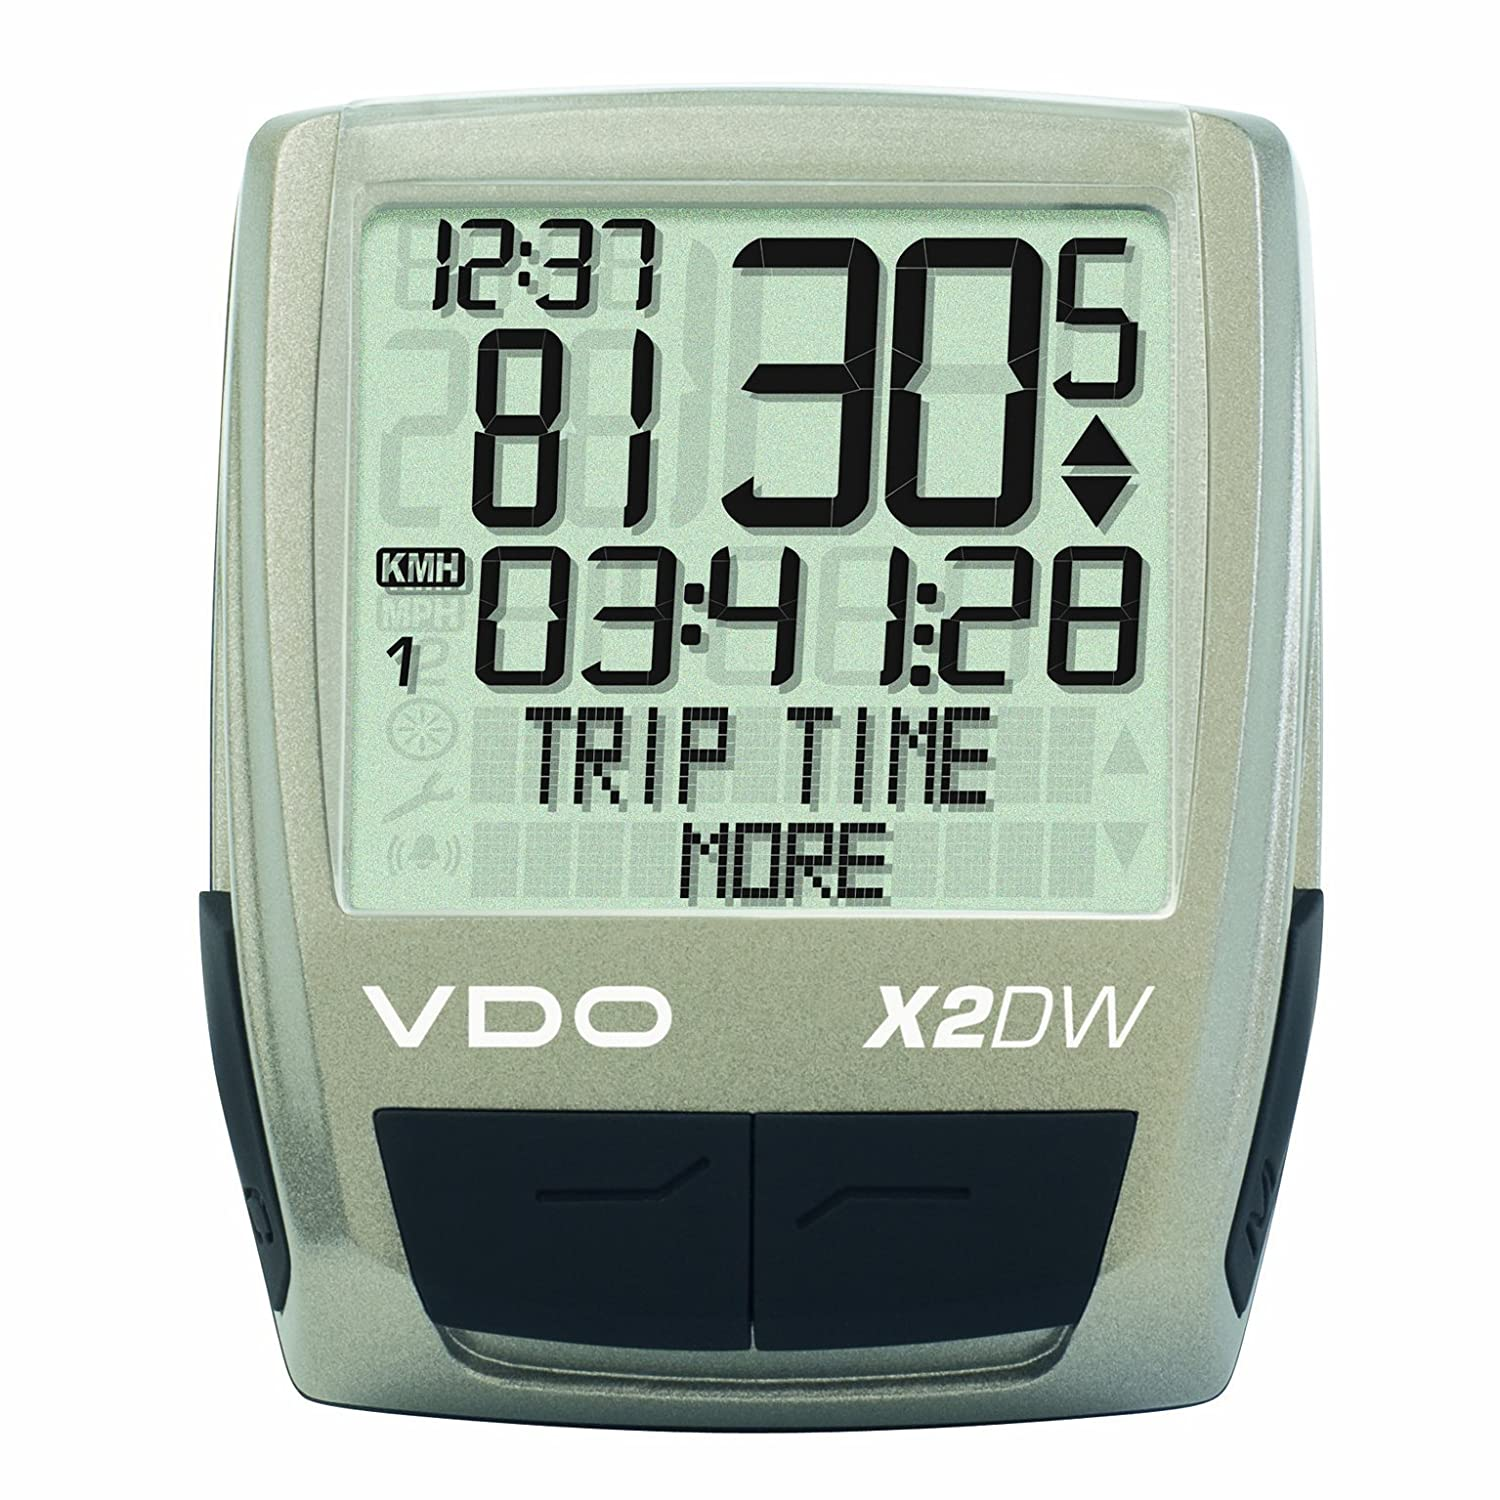 Vdo X2dw Wireless Bicycle Computer Sports Outdoors